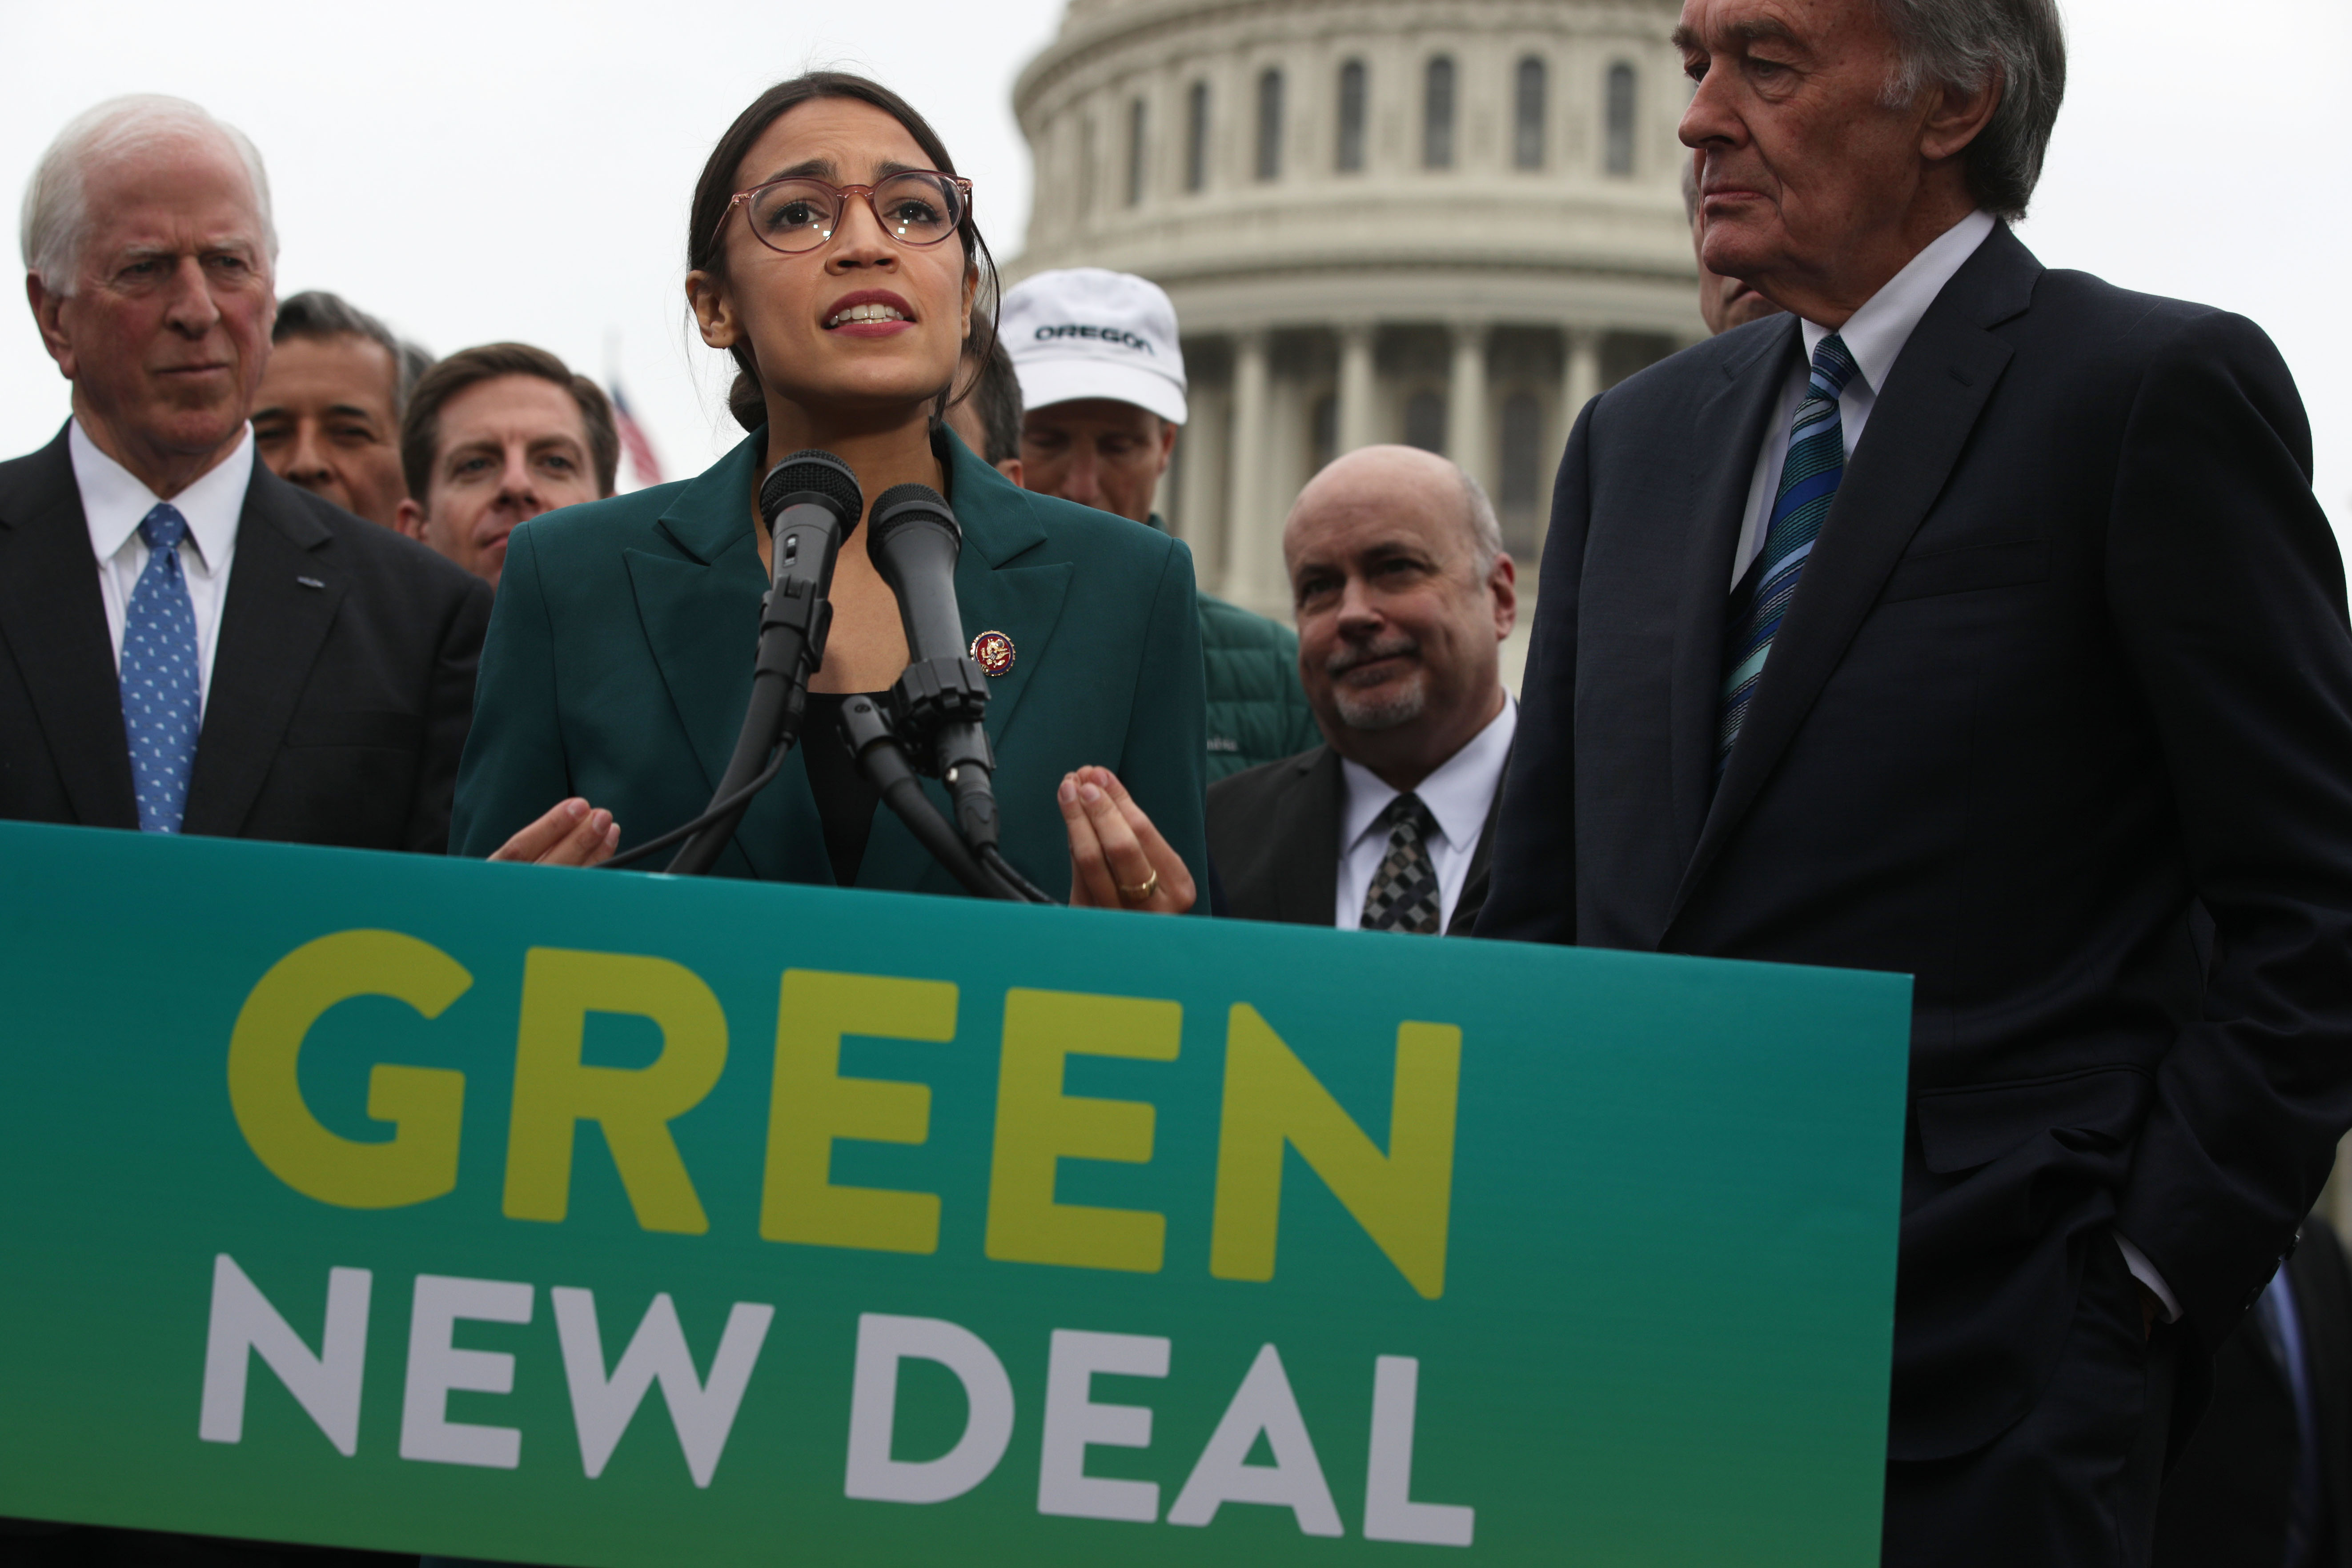 Democratic Lawmakers Rep. Alexandria Ocasio-Cortez And Sen. Ed Markey Unveil Their Green New Deal Resolution